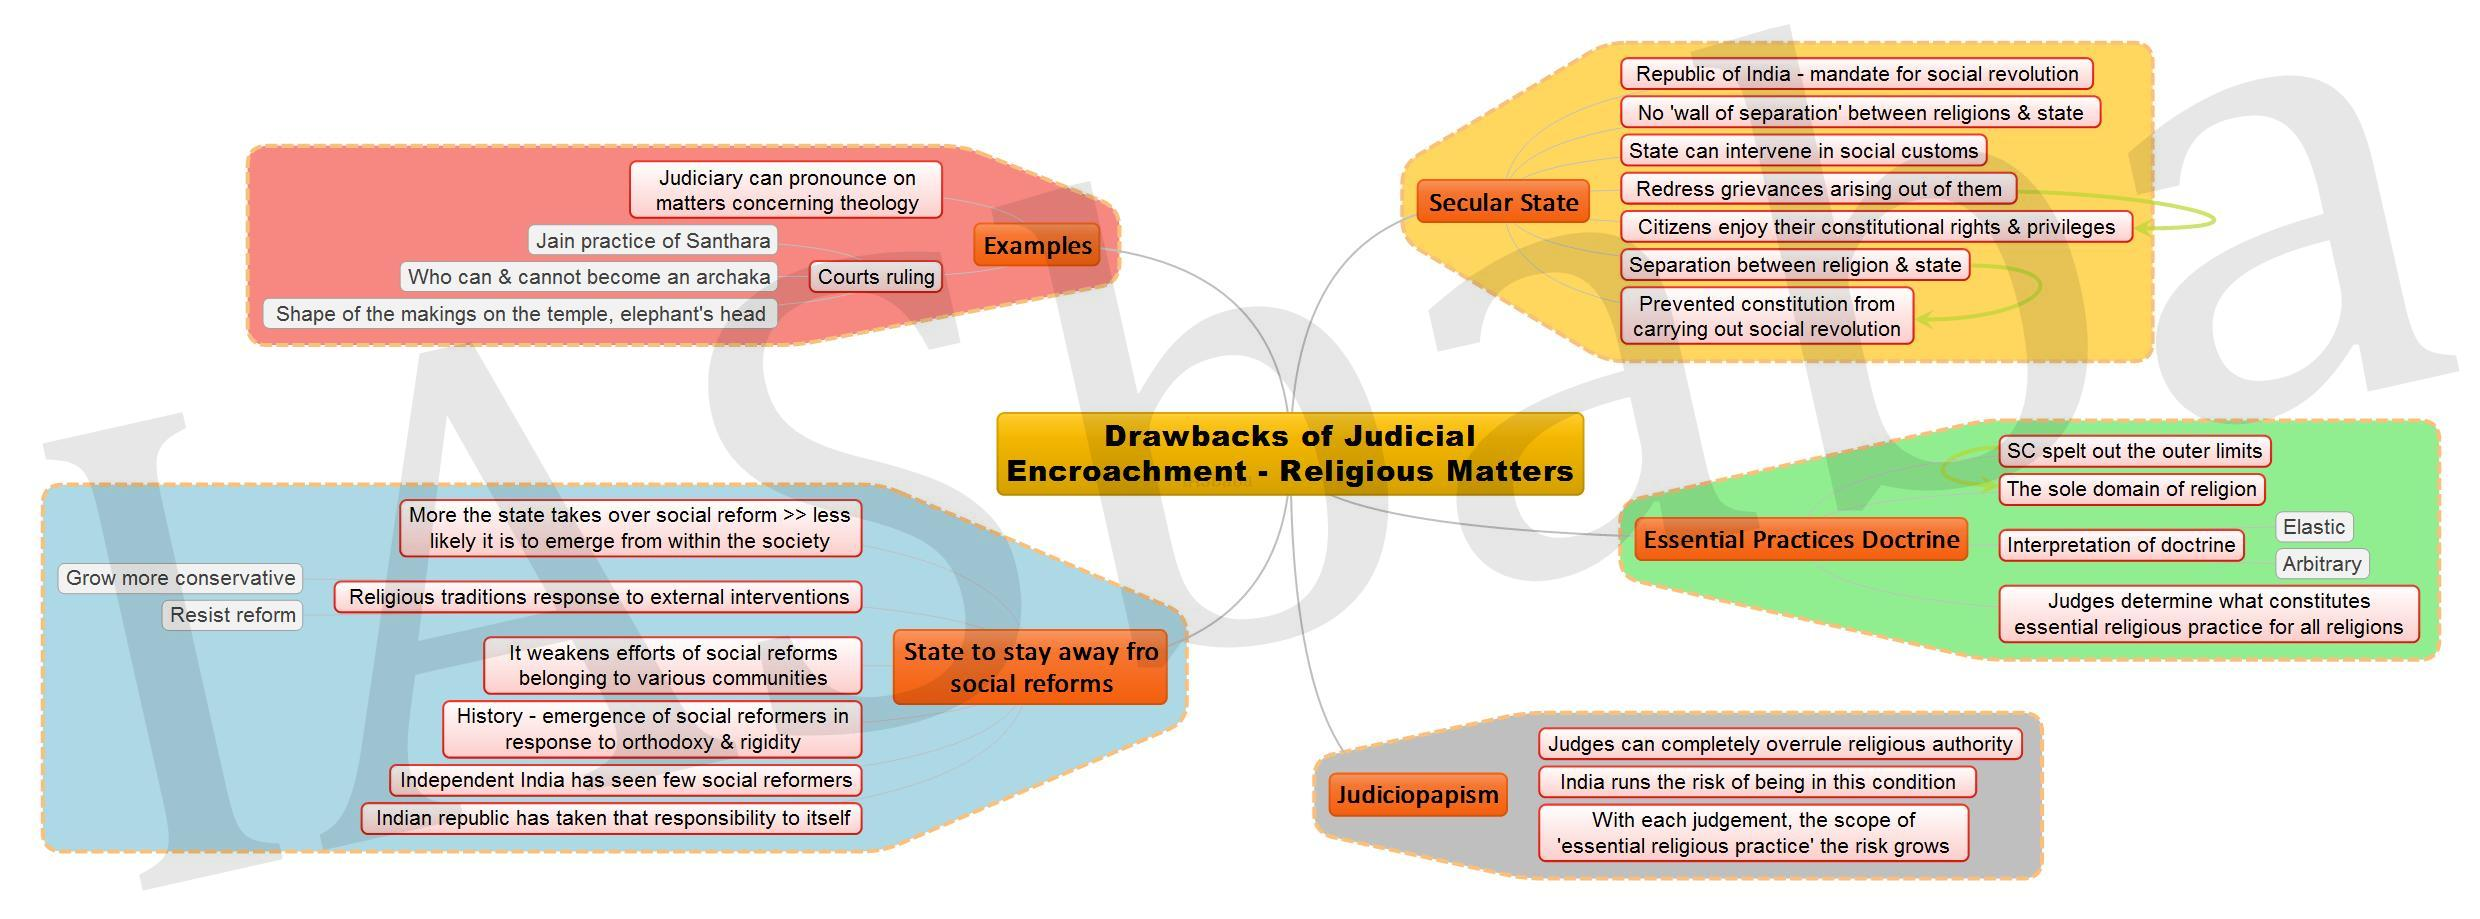 Drawbacks of Judicial Encroachment Religious Matters JPEG